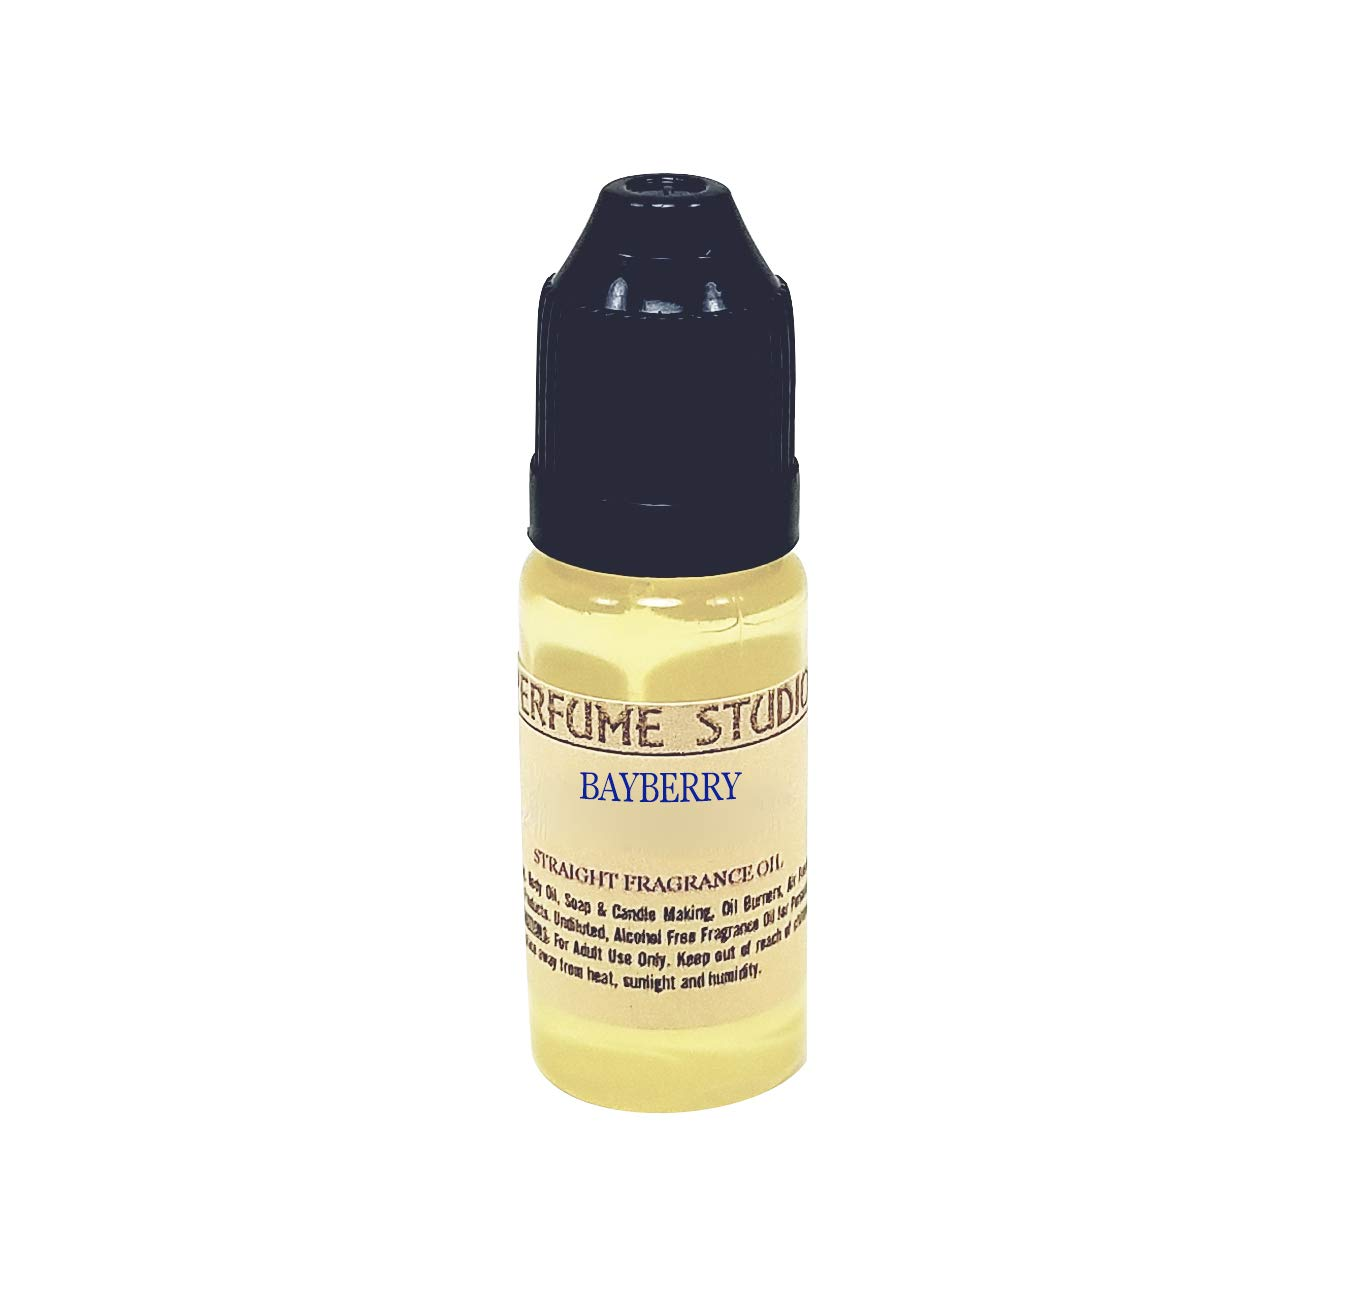 Perfume Studio Fragrance Oil for Soap Making, Candle Making, Perfume Making, Oil Burners, Air Fresheners, Body Mists, Incense, Hair & Skincare Products. Pure Parfum; 12ml (Bayberry)